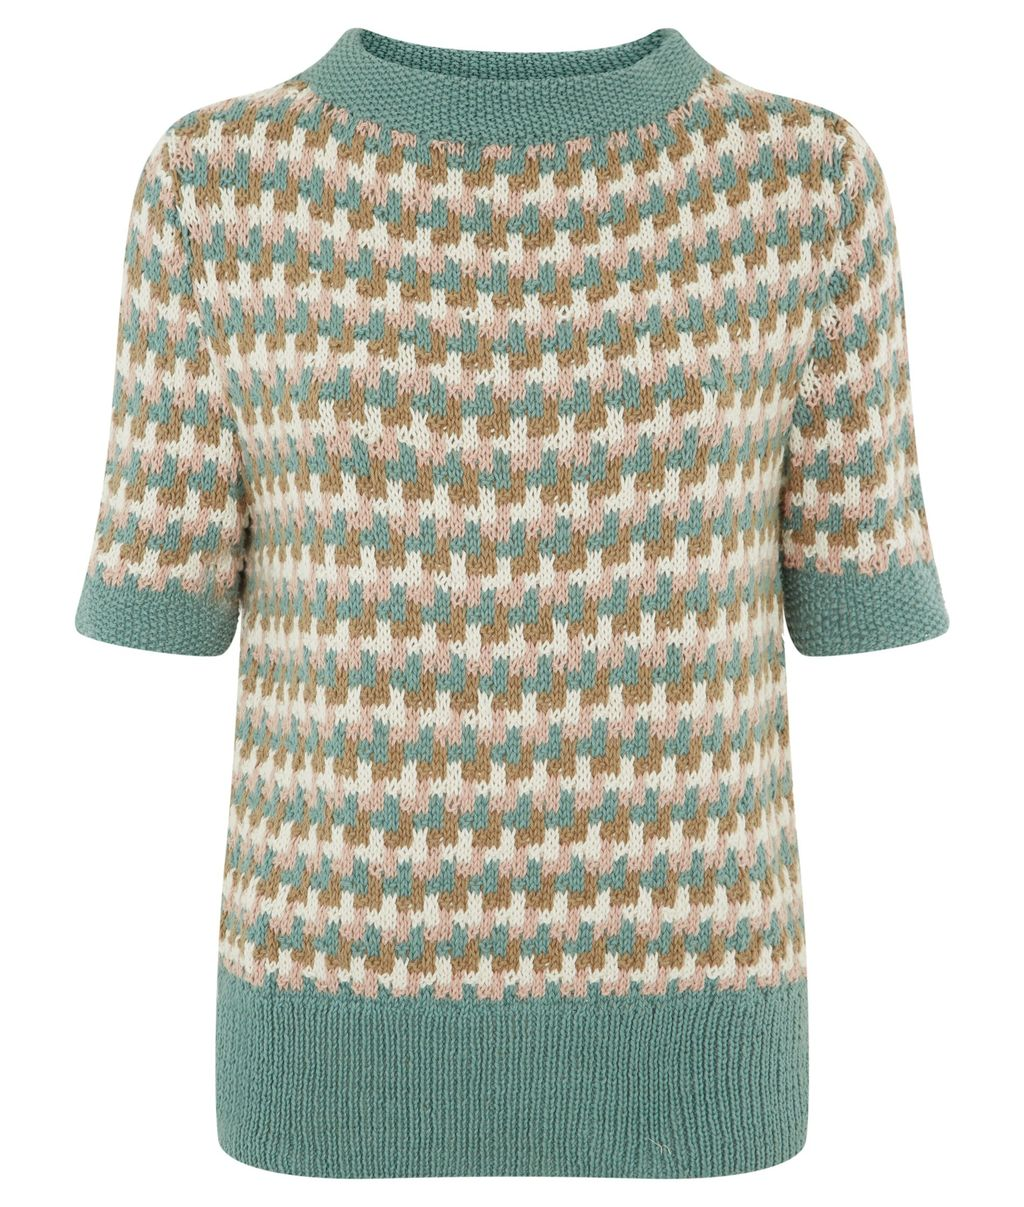 Rowena Short Sleeved Jumper, Blue - neckline: high neck; style: standard; occasions: casual, creative work; length: standard; fibres: cotton - 100%; fit: standard fit; predominant colour: multicoloured; sleeve length: half sleeve; sleeve style: standard; texture group: knits/crochet; pattern type: knitted - fine stitch; pattern: patterned/print; season: s/s 2015; pattern size: big & busy (top); multicoloured: multicoloured